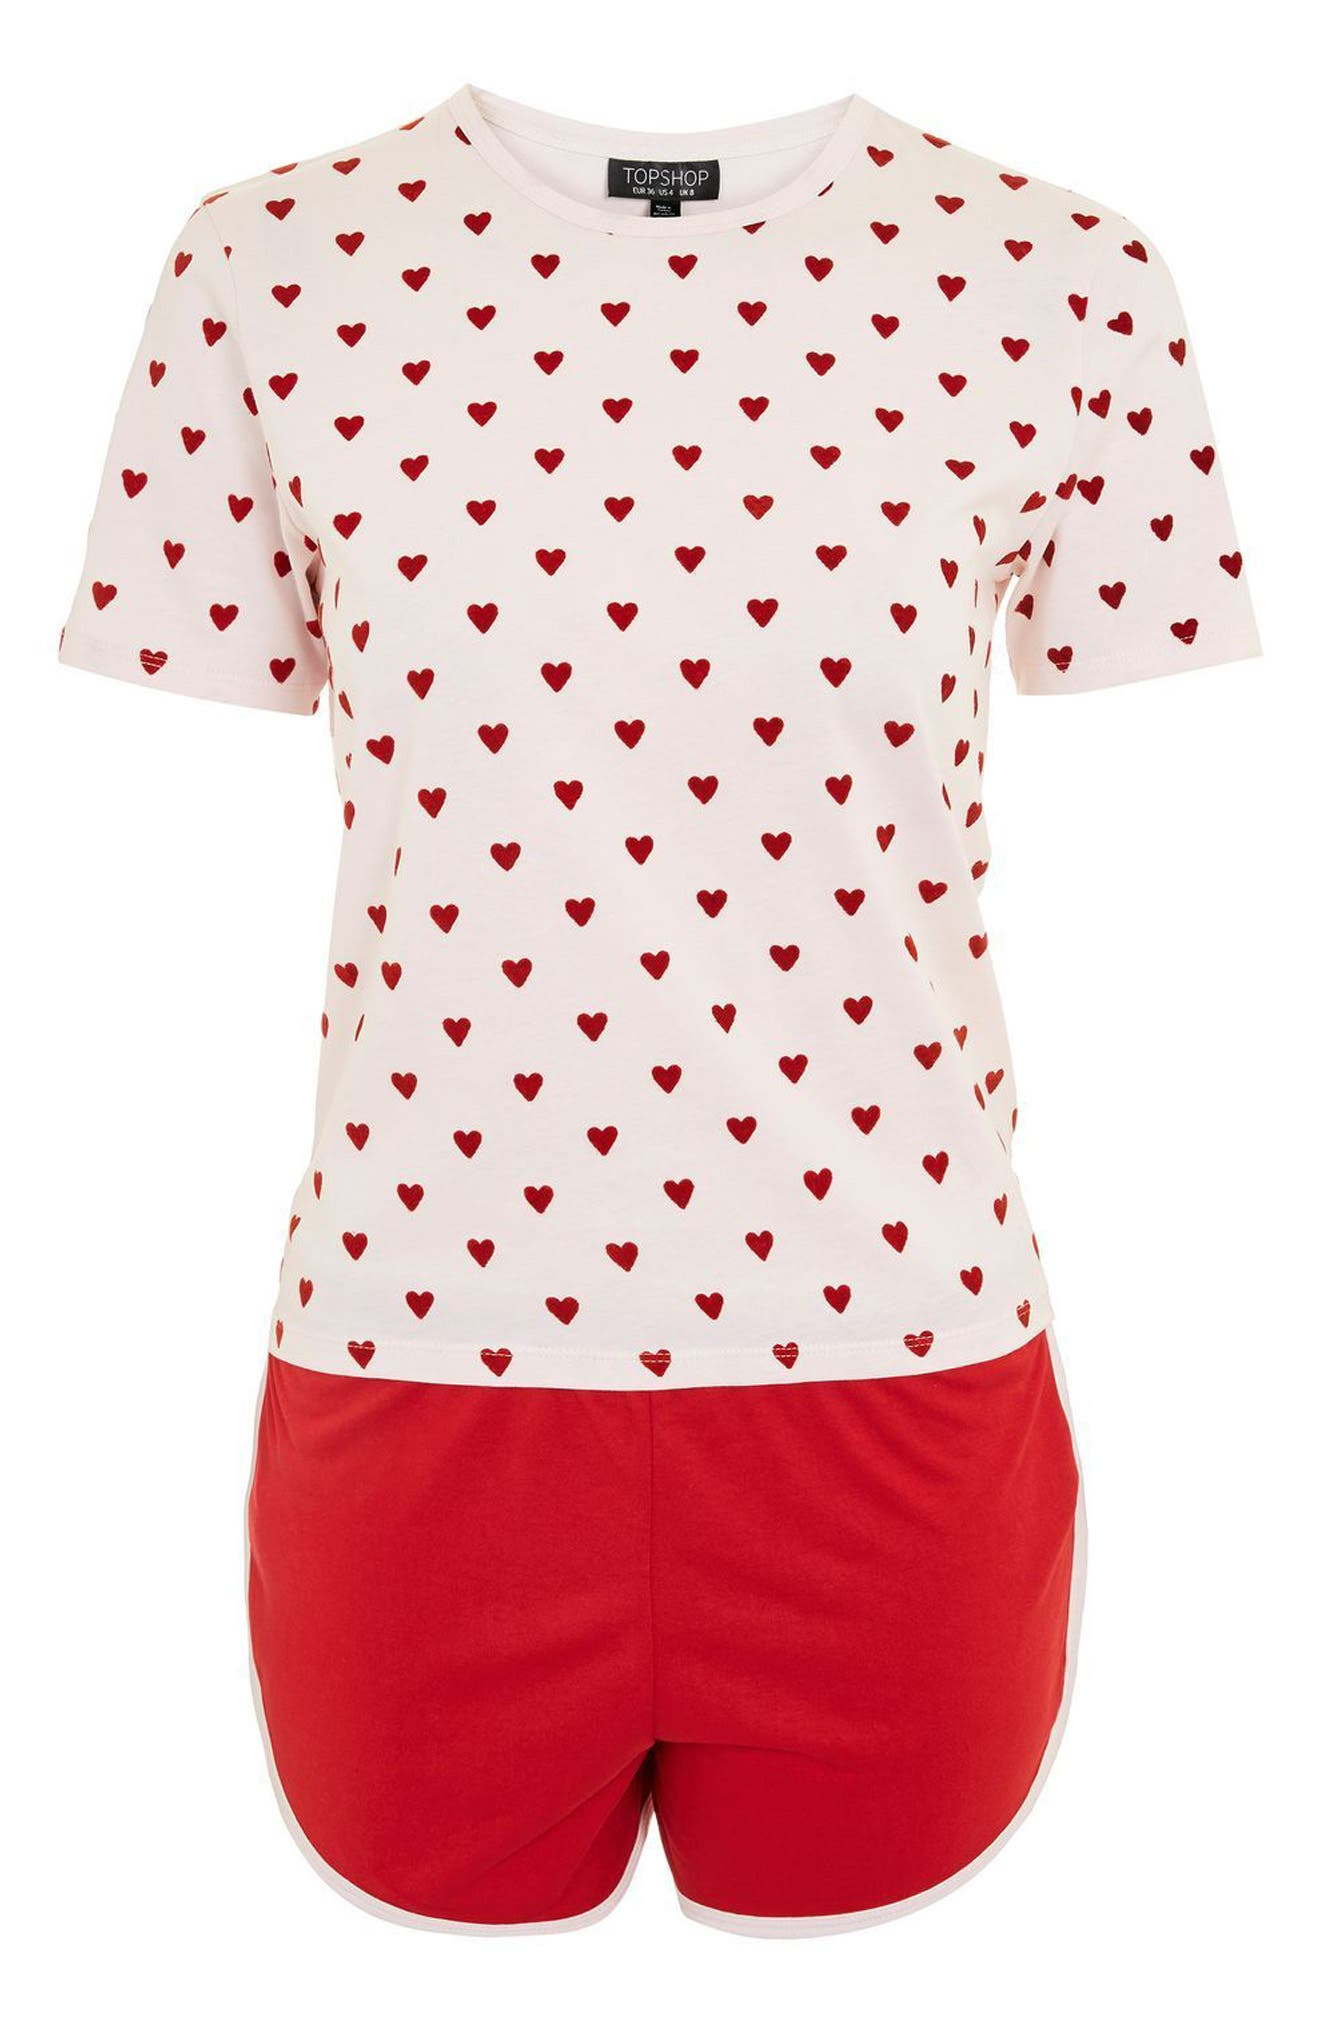 Flocked Heart Pajamas,                             Alternate thumbnail 3, color,                             Red Multi